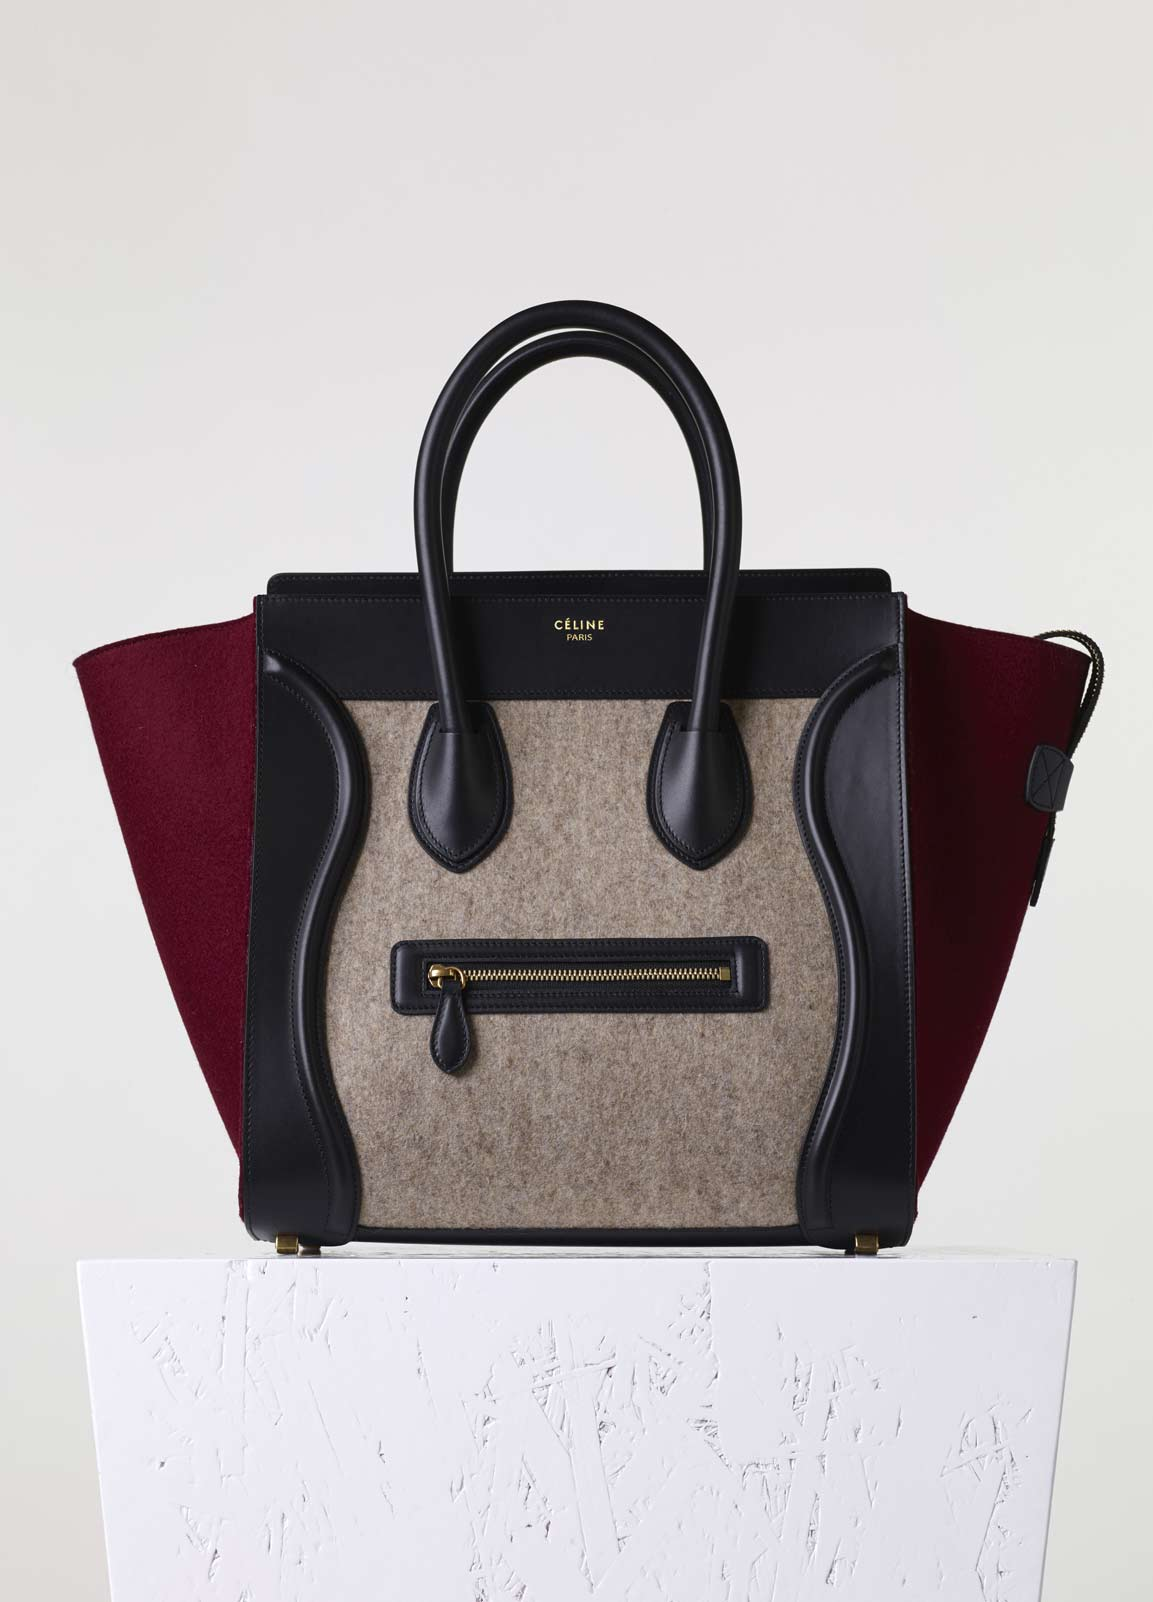 celine shoulder bag - Celine Pre-Fall 2015 Bag Collection featuring new Sangle Hobo ...